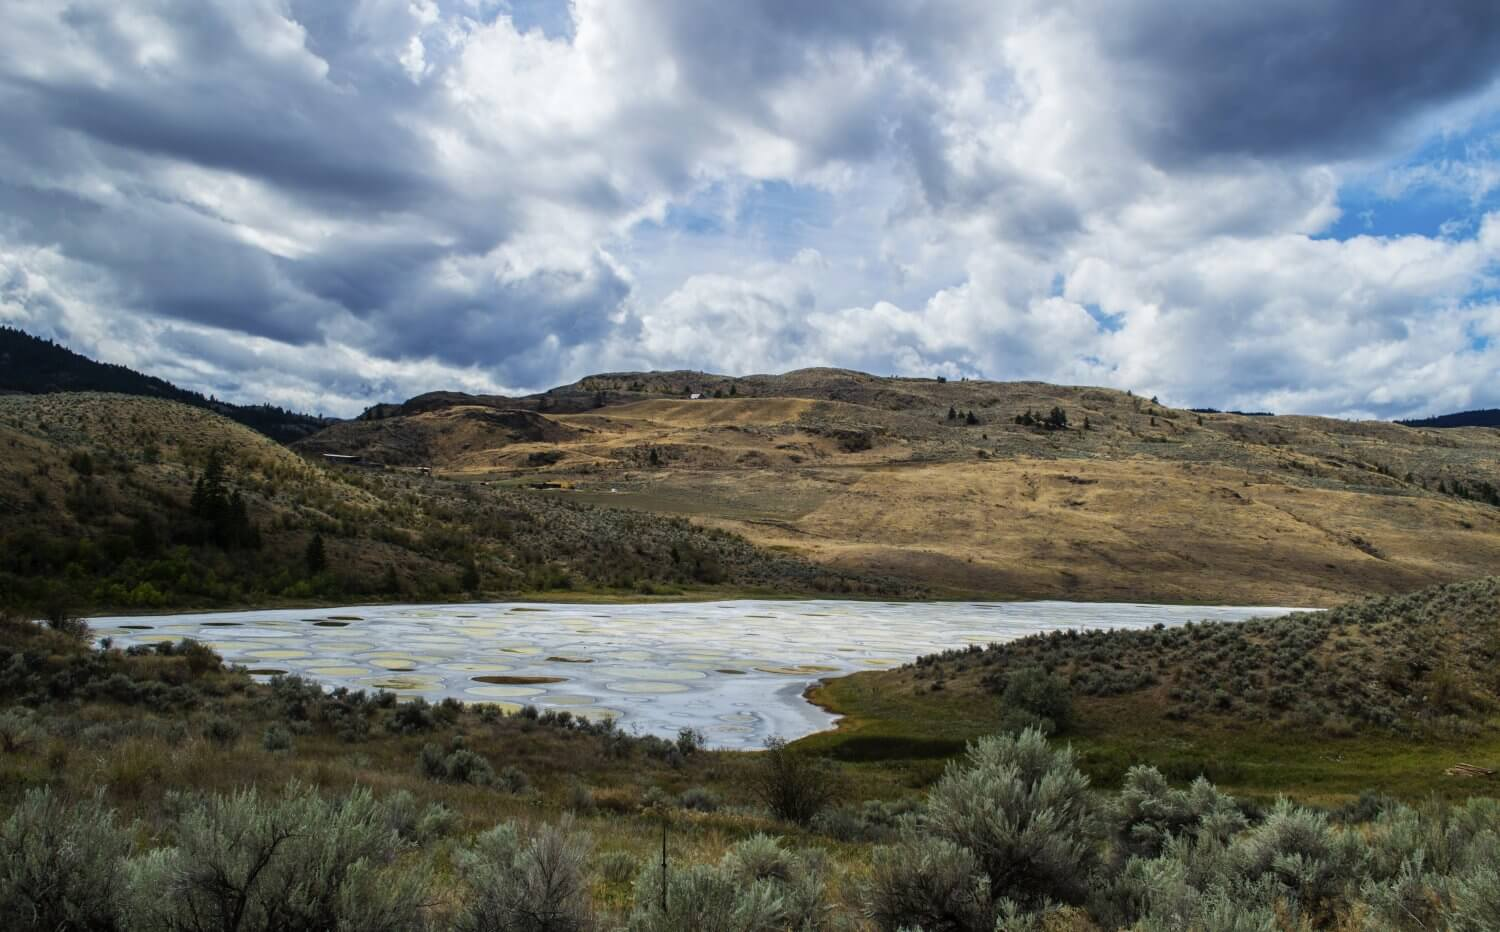 Spotted Lake in Osoyoos, Canada - an incredible hidden gem that is a must for your next visit to British Columbia, Canada and the Okanagan.